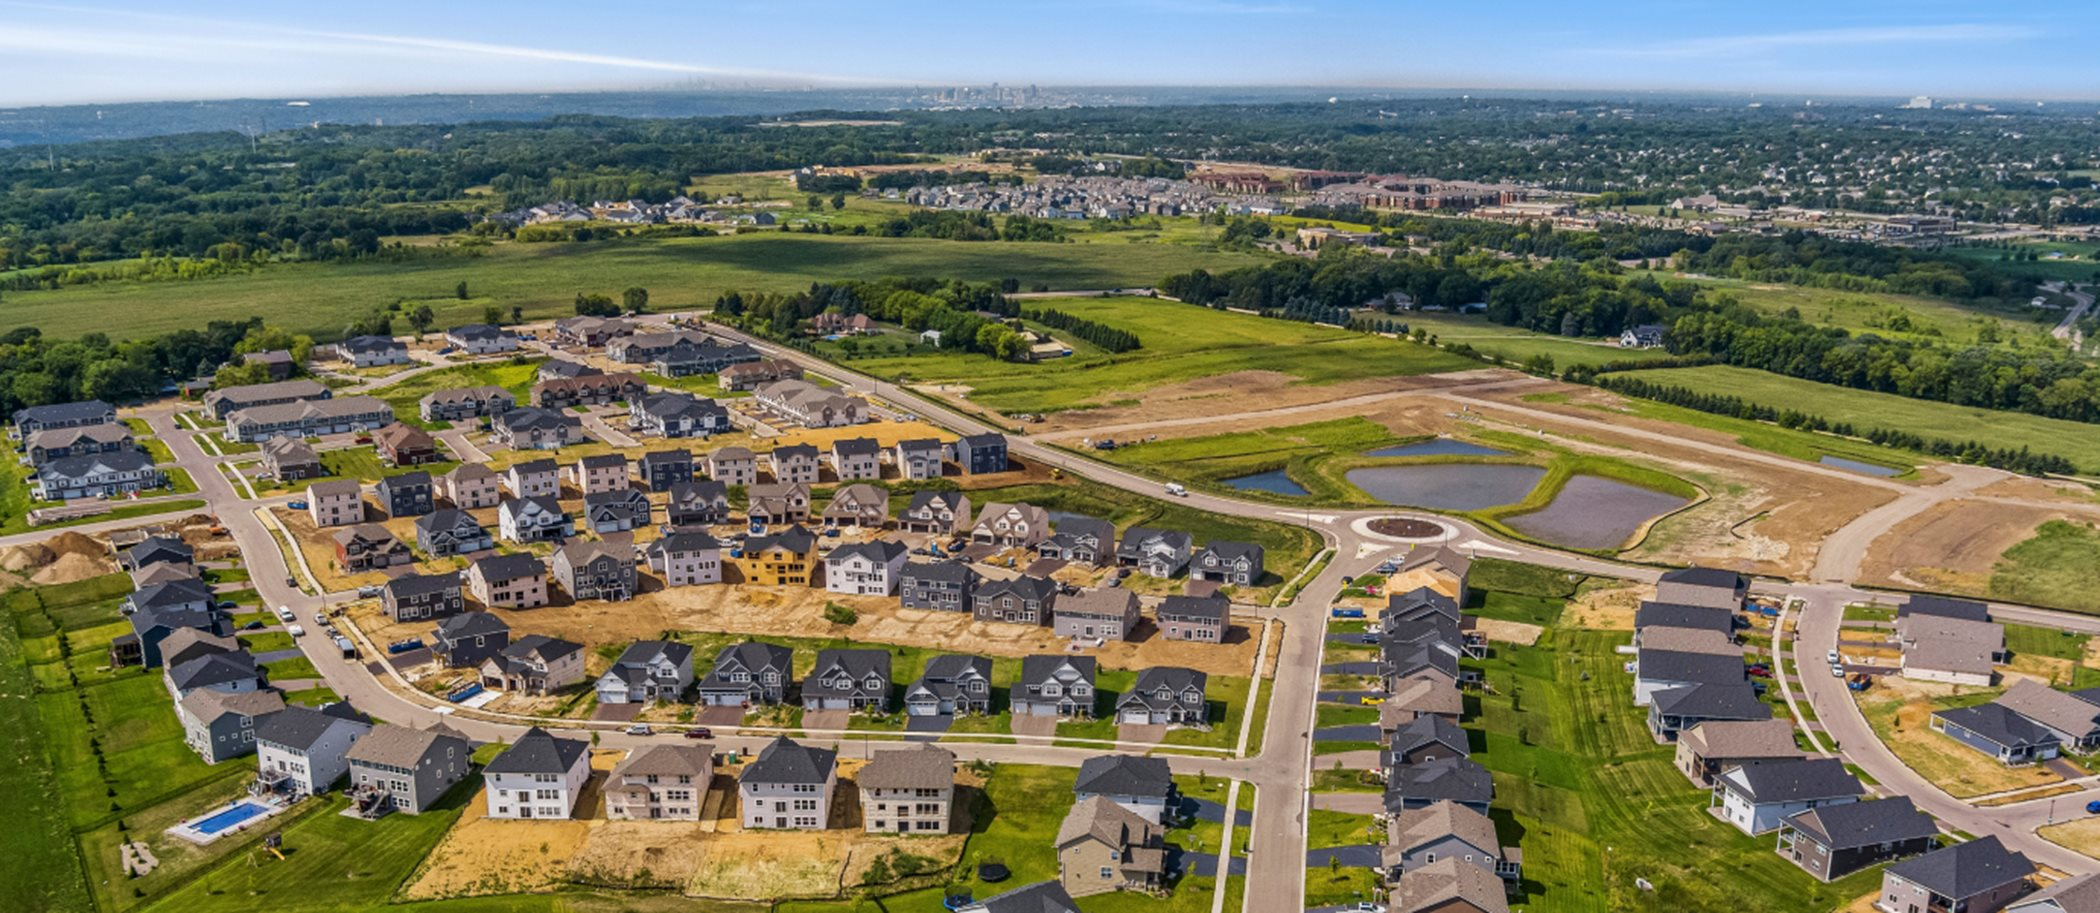 Landmark Collection at Bridlewood Farms Aerial View